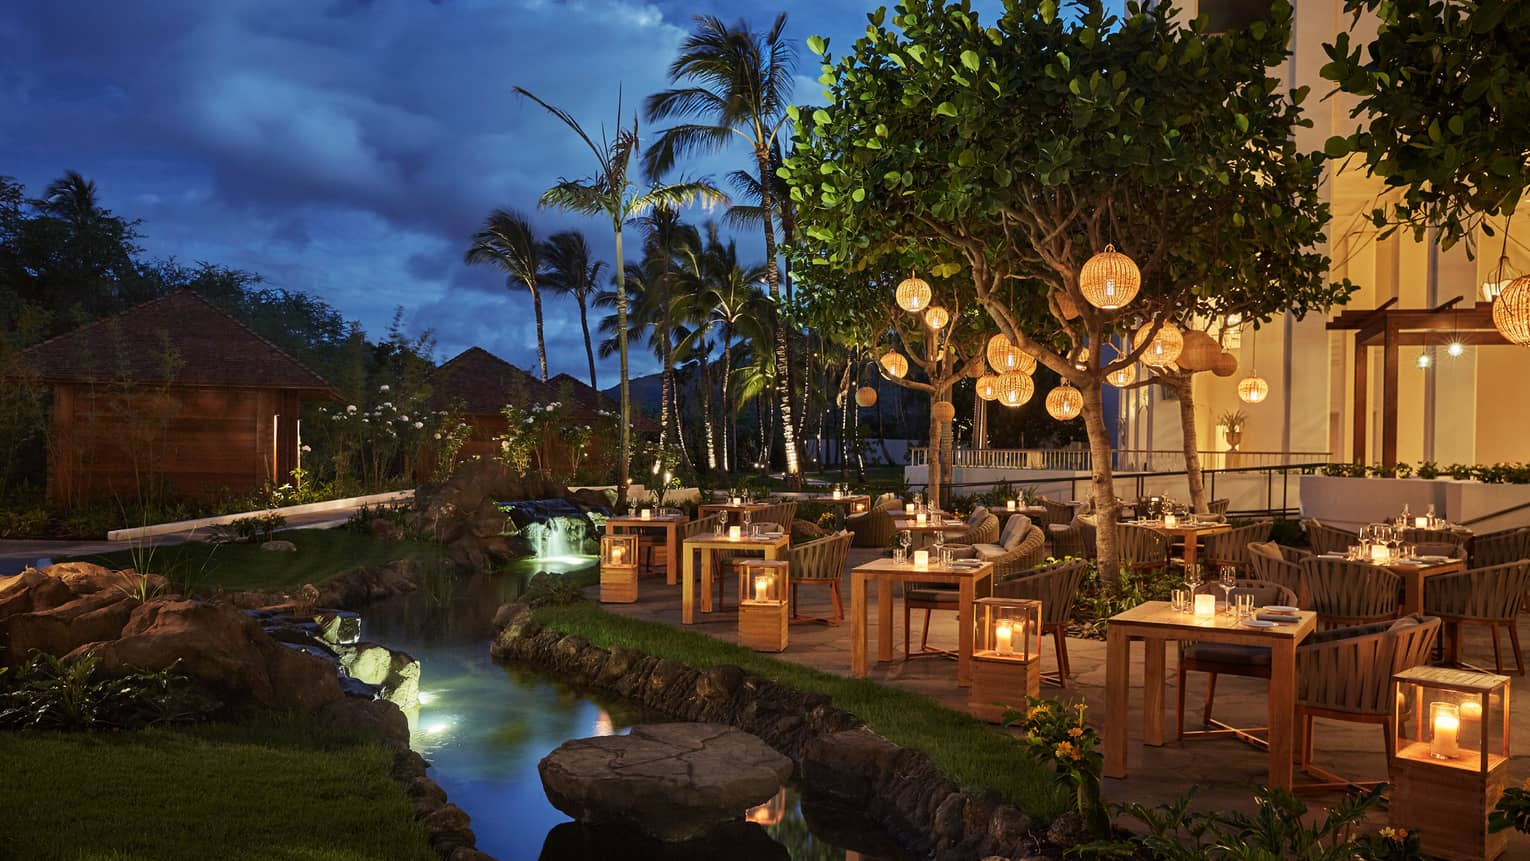 Noe Patio Dining Tables Chairs Lanterns By Stream At Night